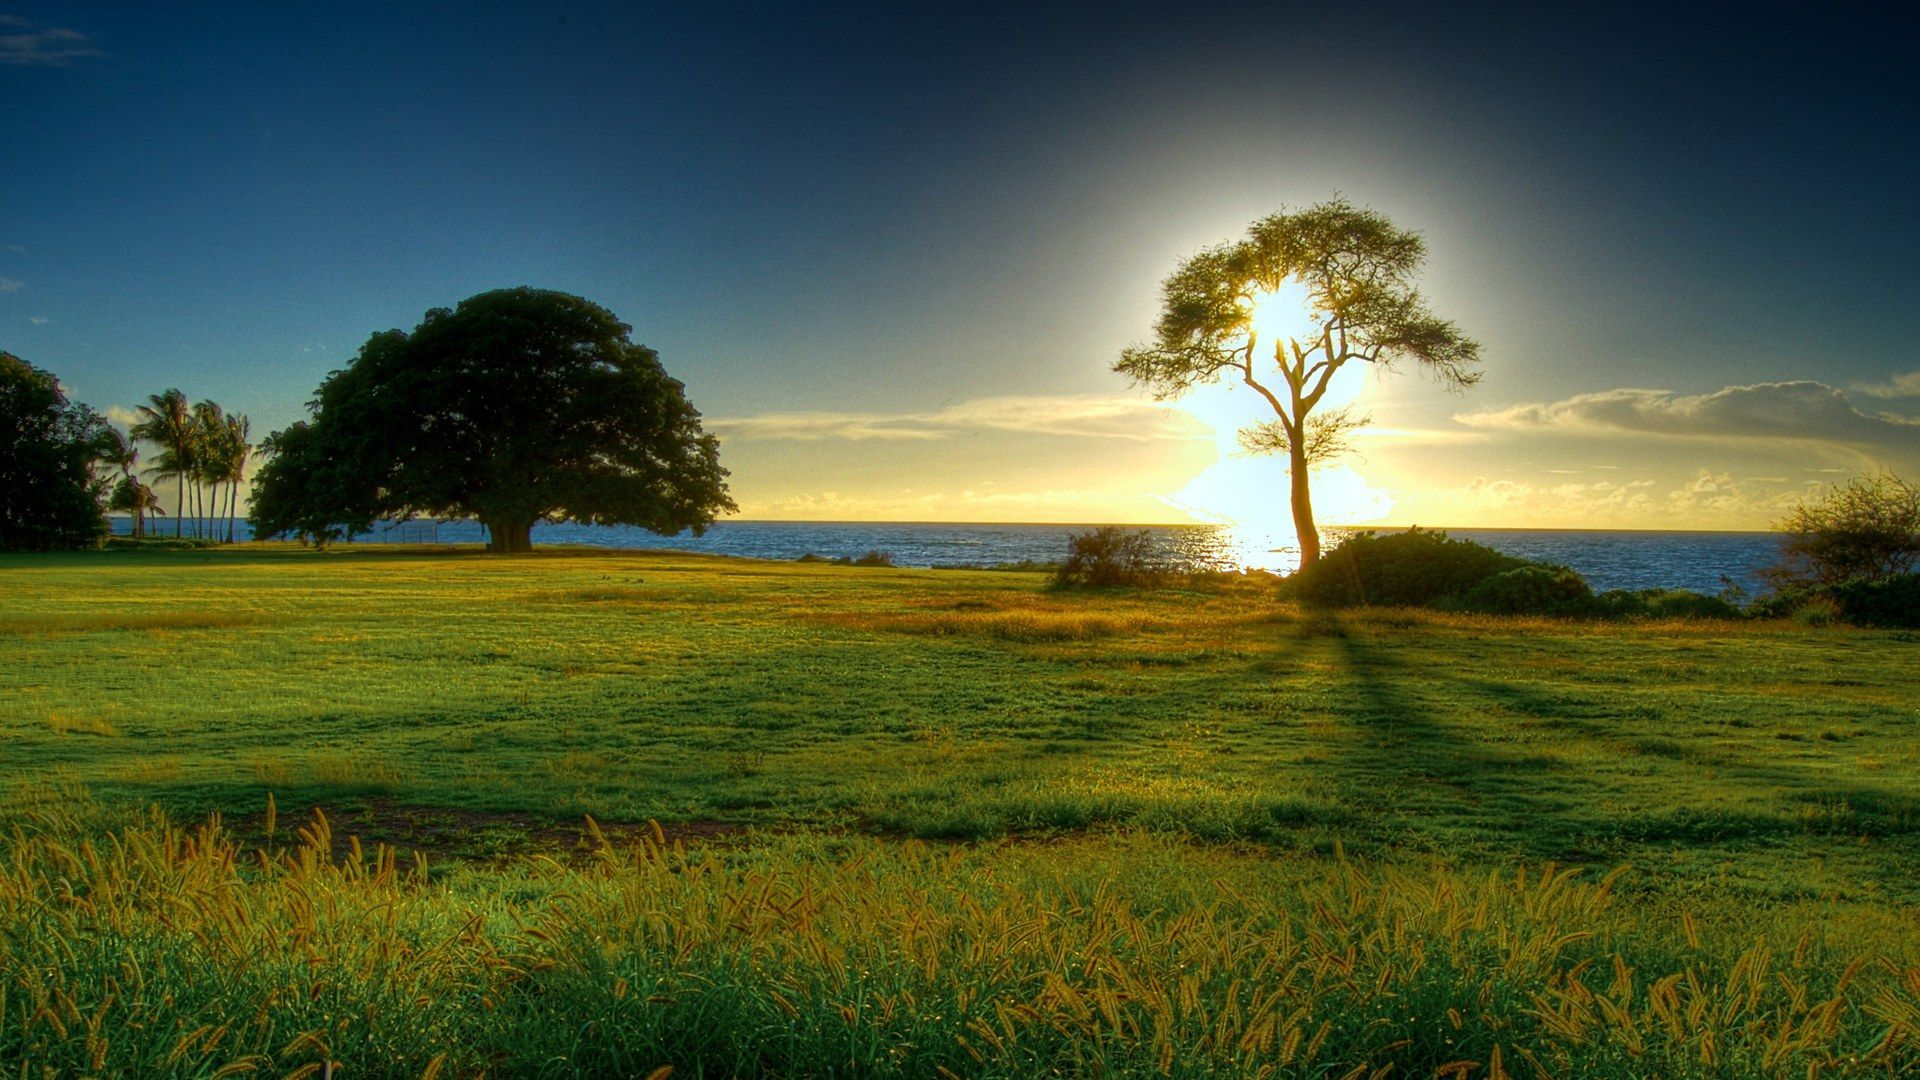 Nature Wallpapers 4k Hd Nature Backgrounds On Wallpaperbat